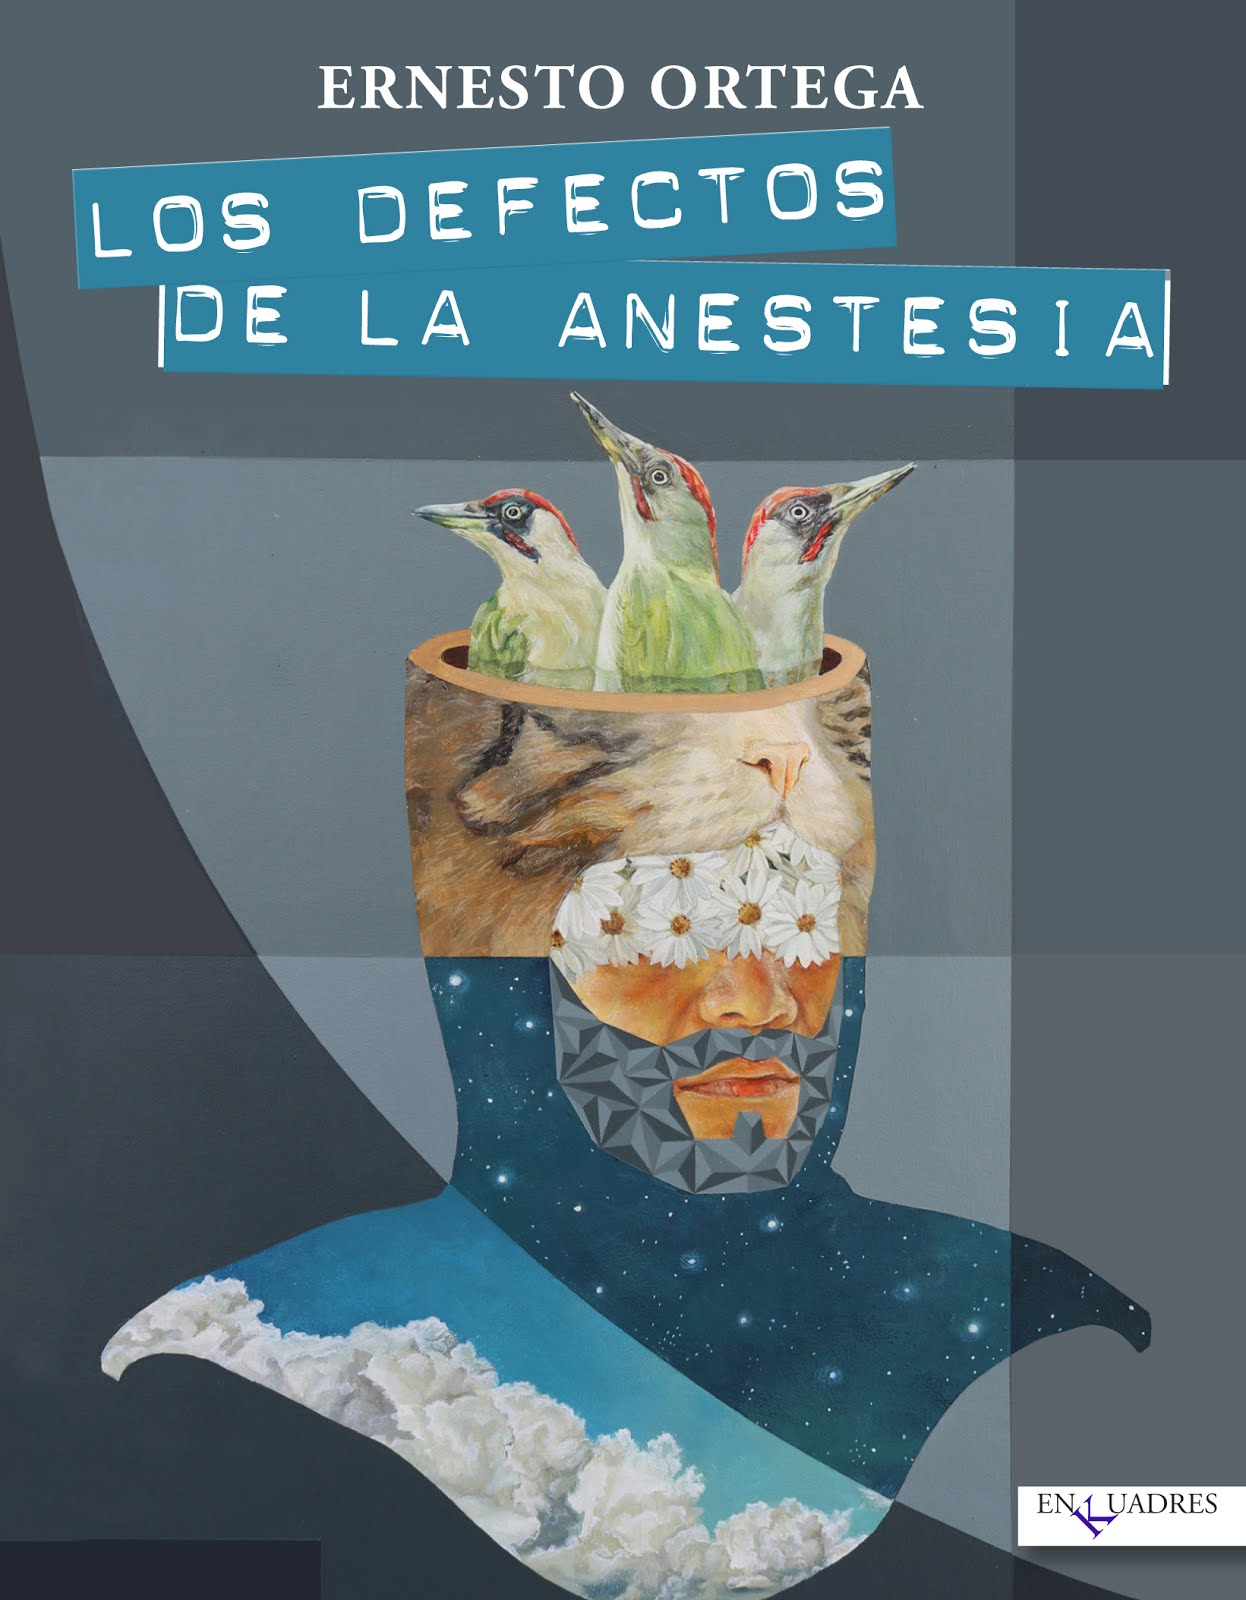 Los defectos de la anestesia